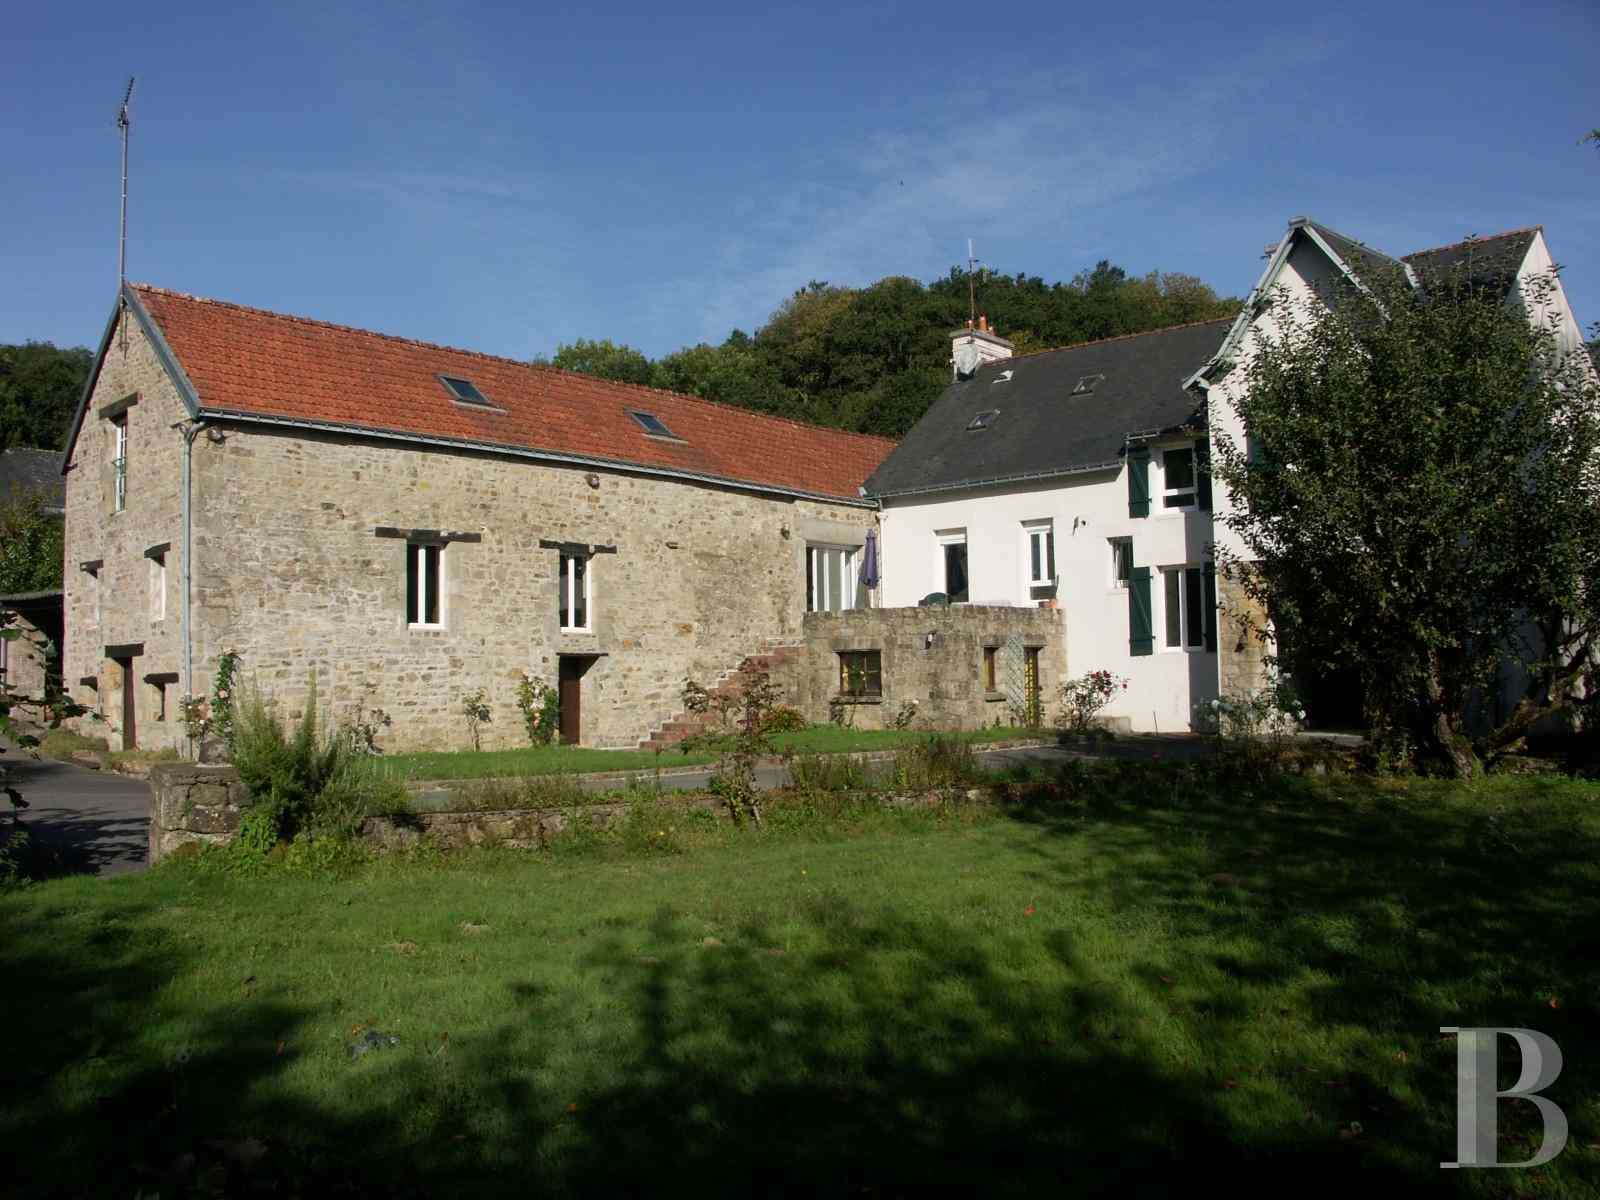 property for sale France brittany lorient outbuildings - 2 zoom